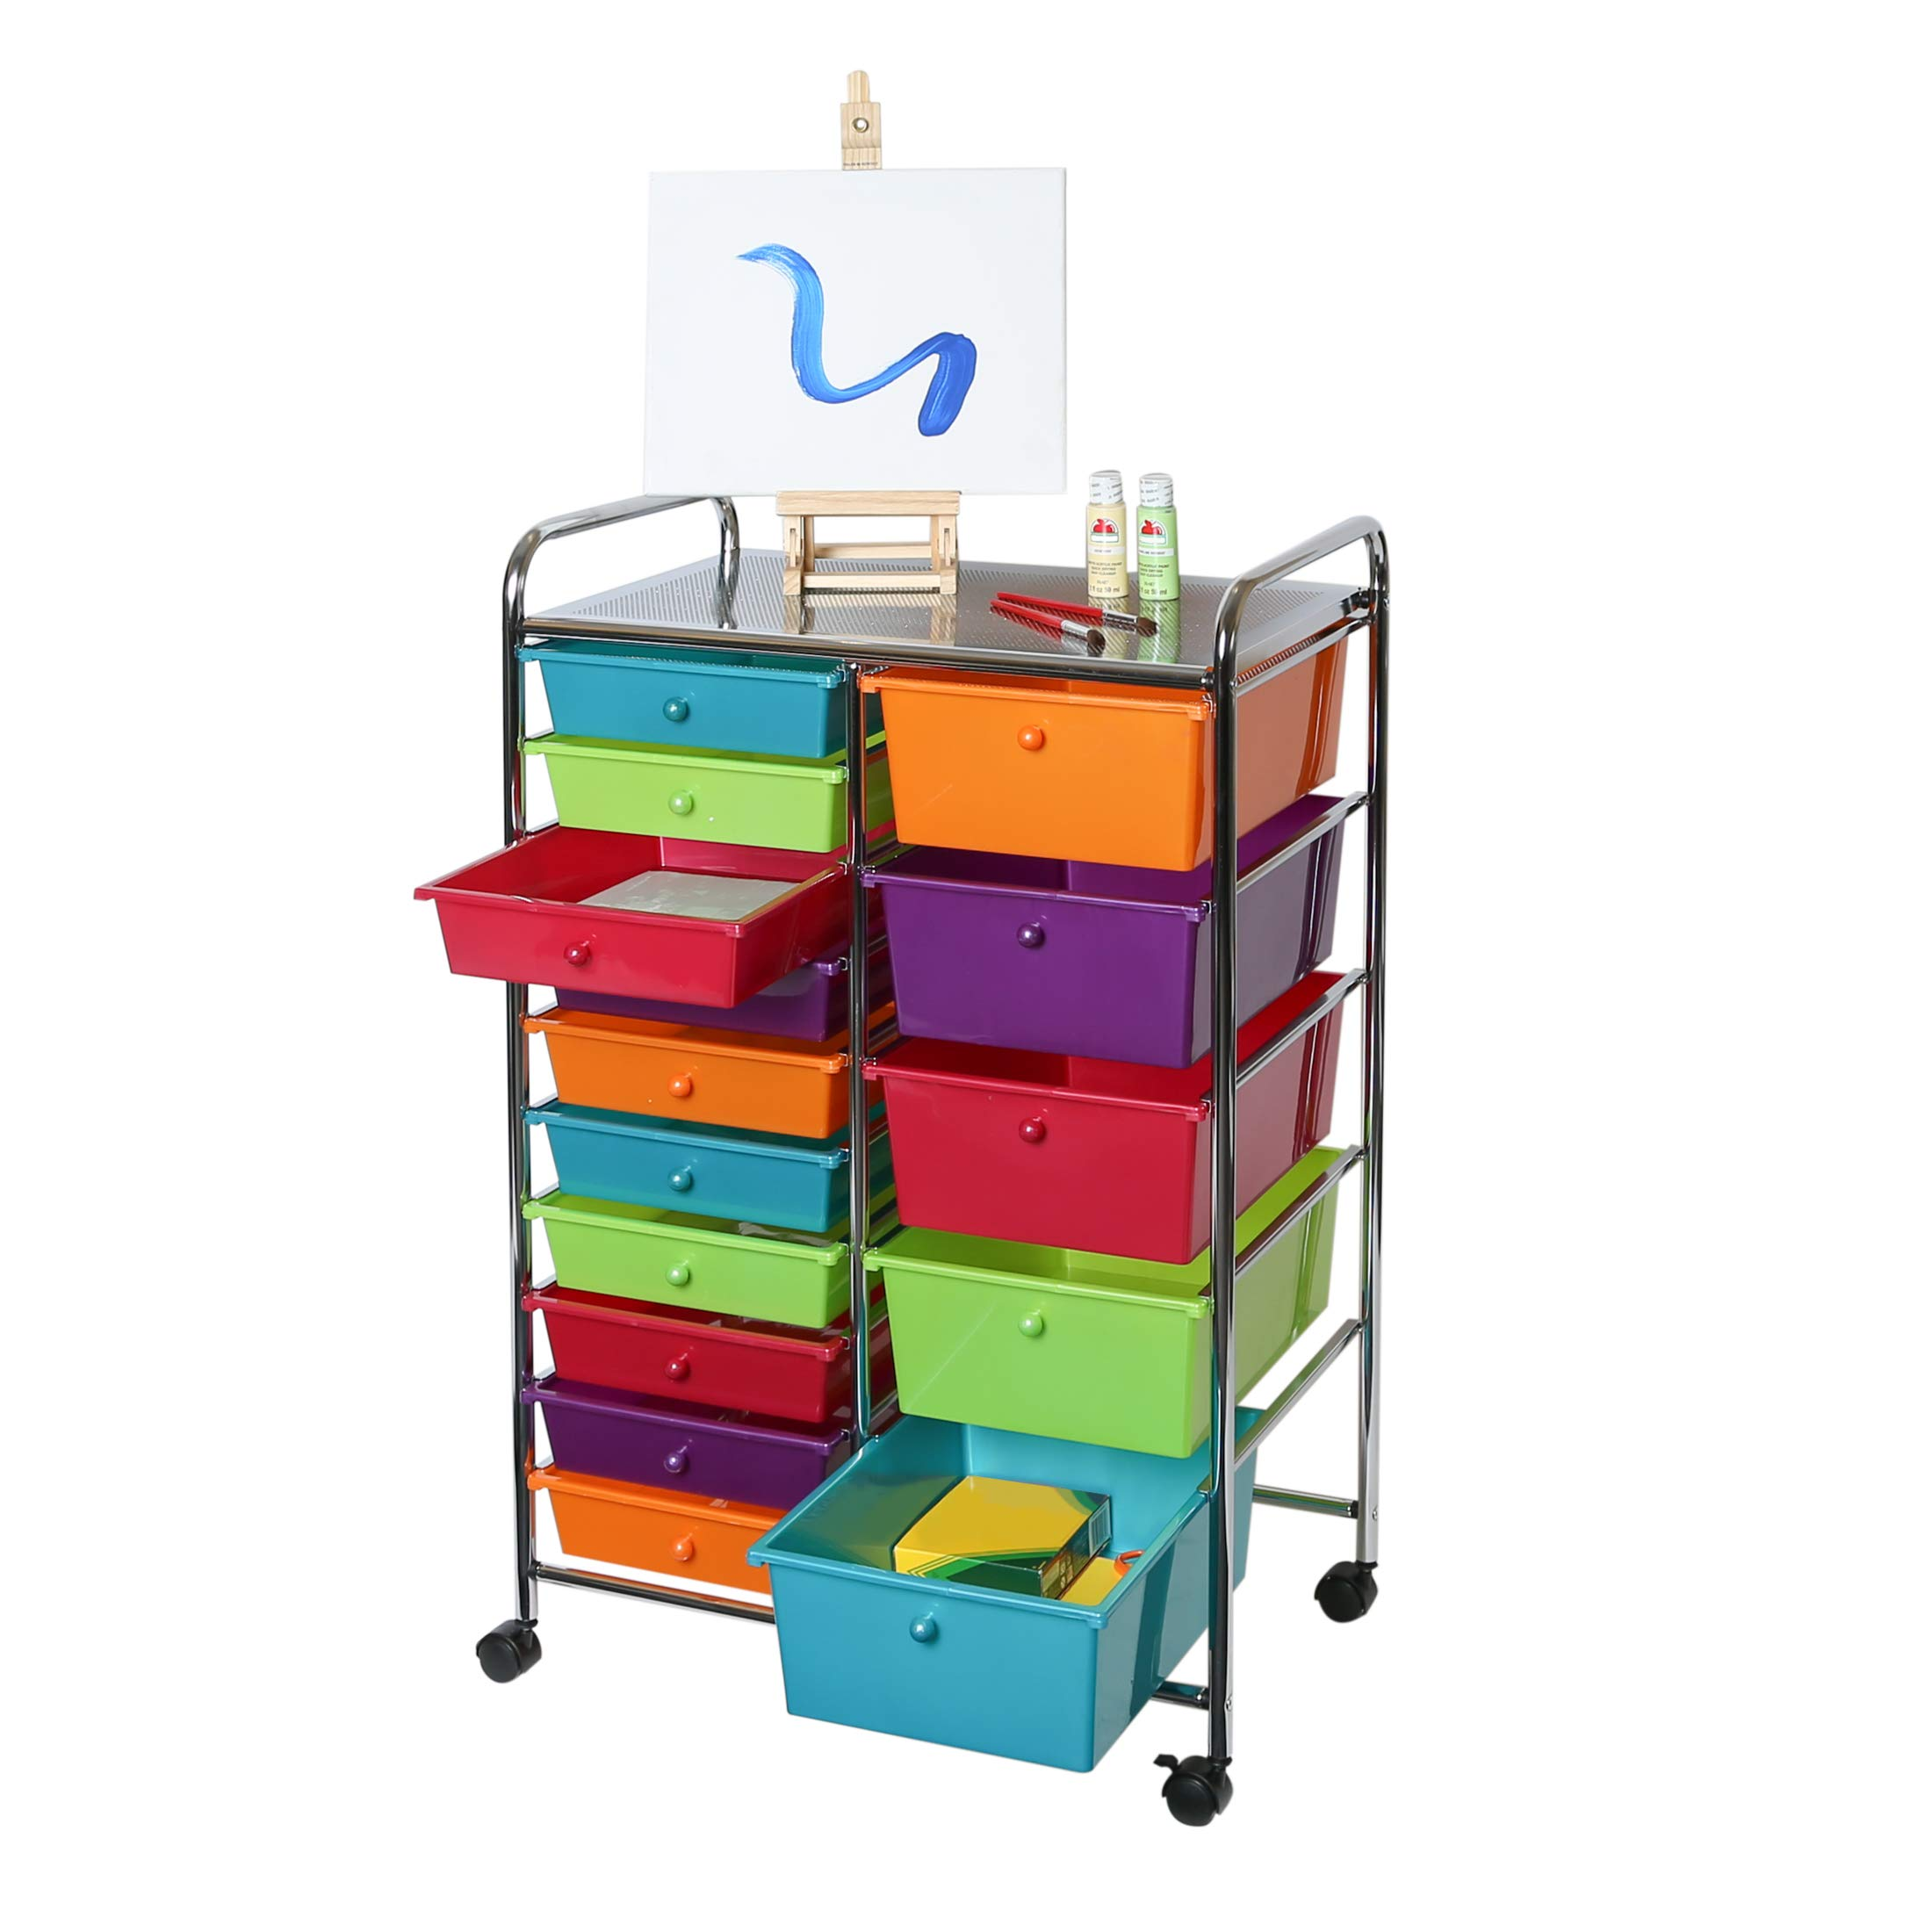 Seville Classics 15-Drawer Organizer Cart Pearlescent Multi-Color by Seville Classics (Image #1)